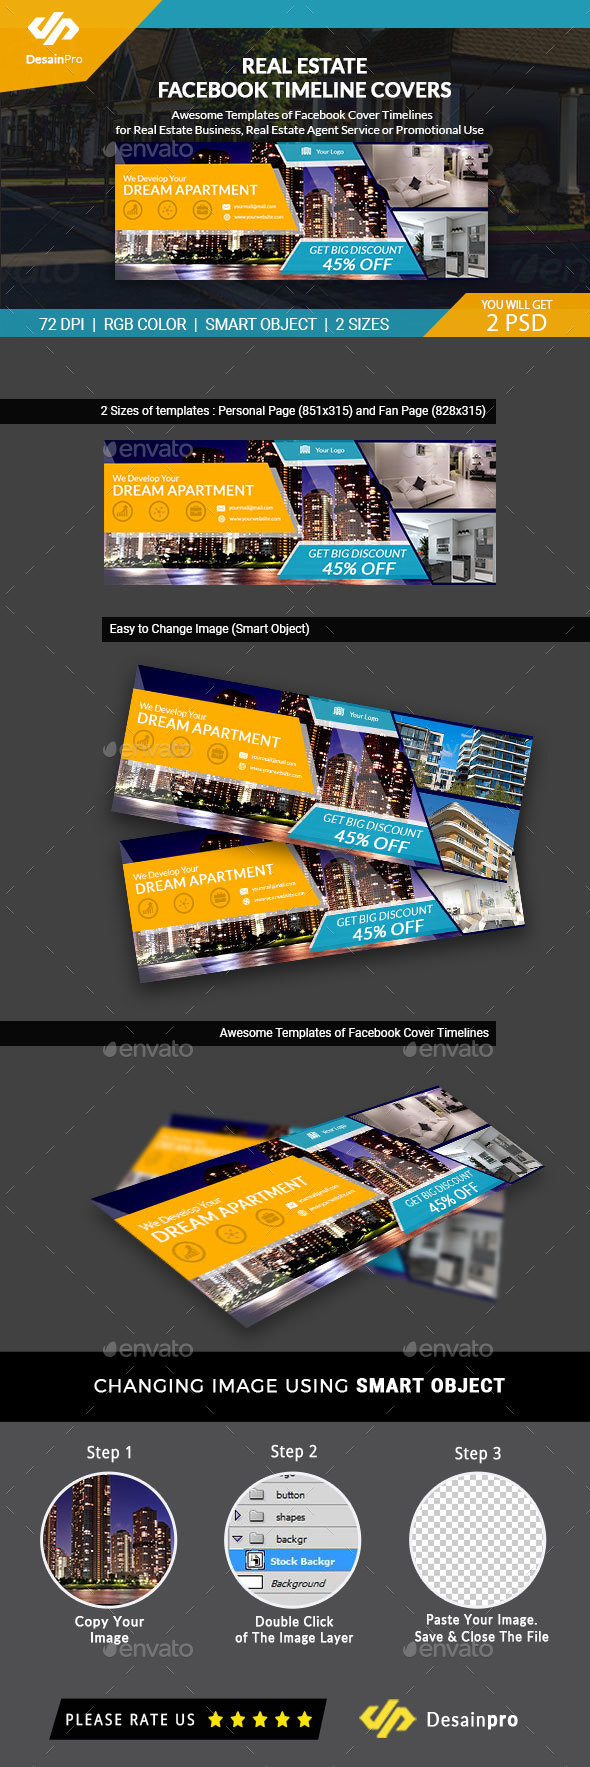 Real Estate FB Cover Timeline Template - AR - Facebook Timeline Covers Social Media